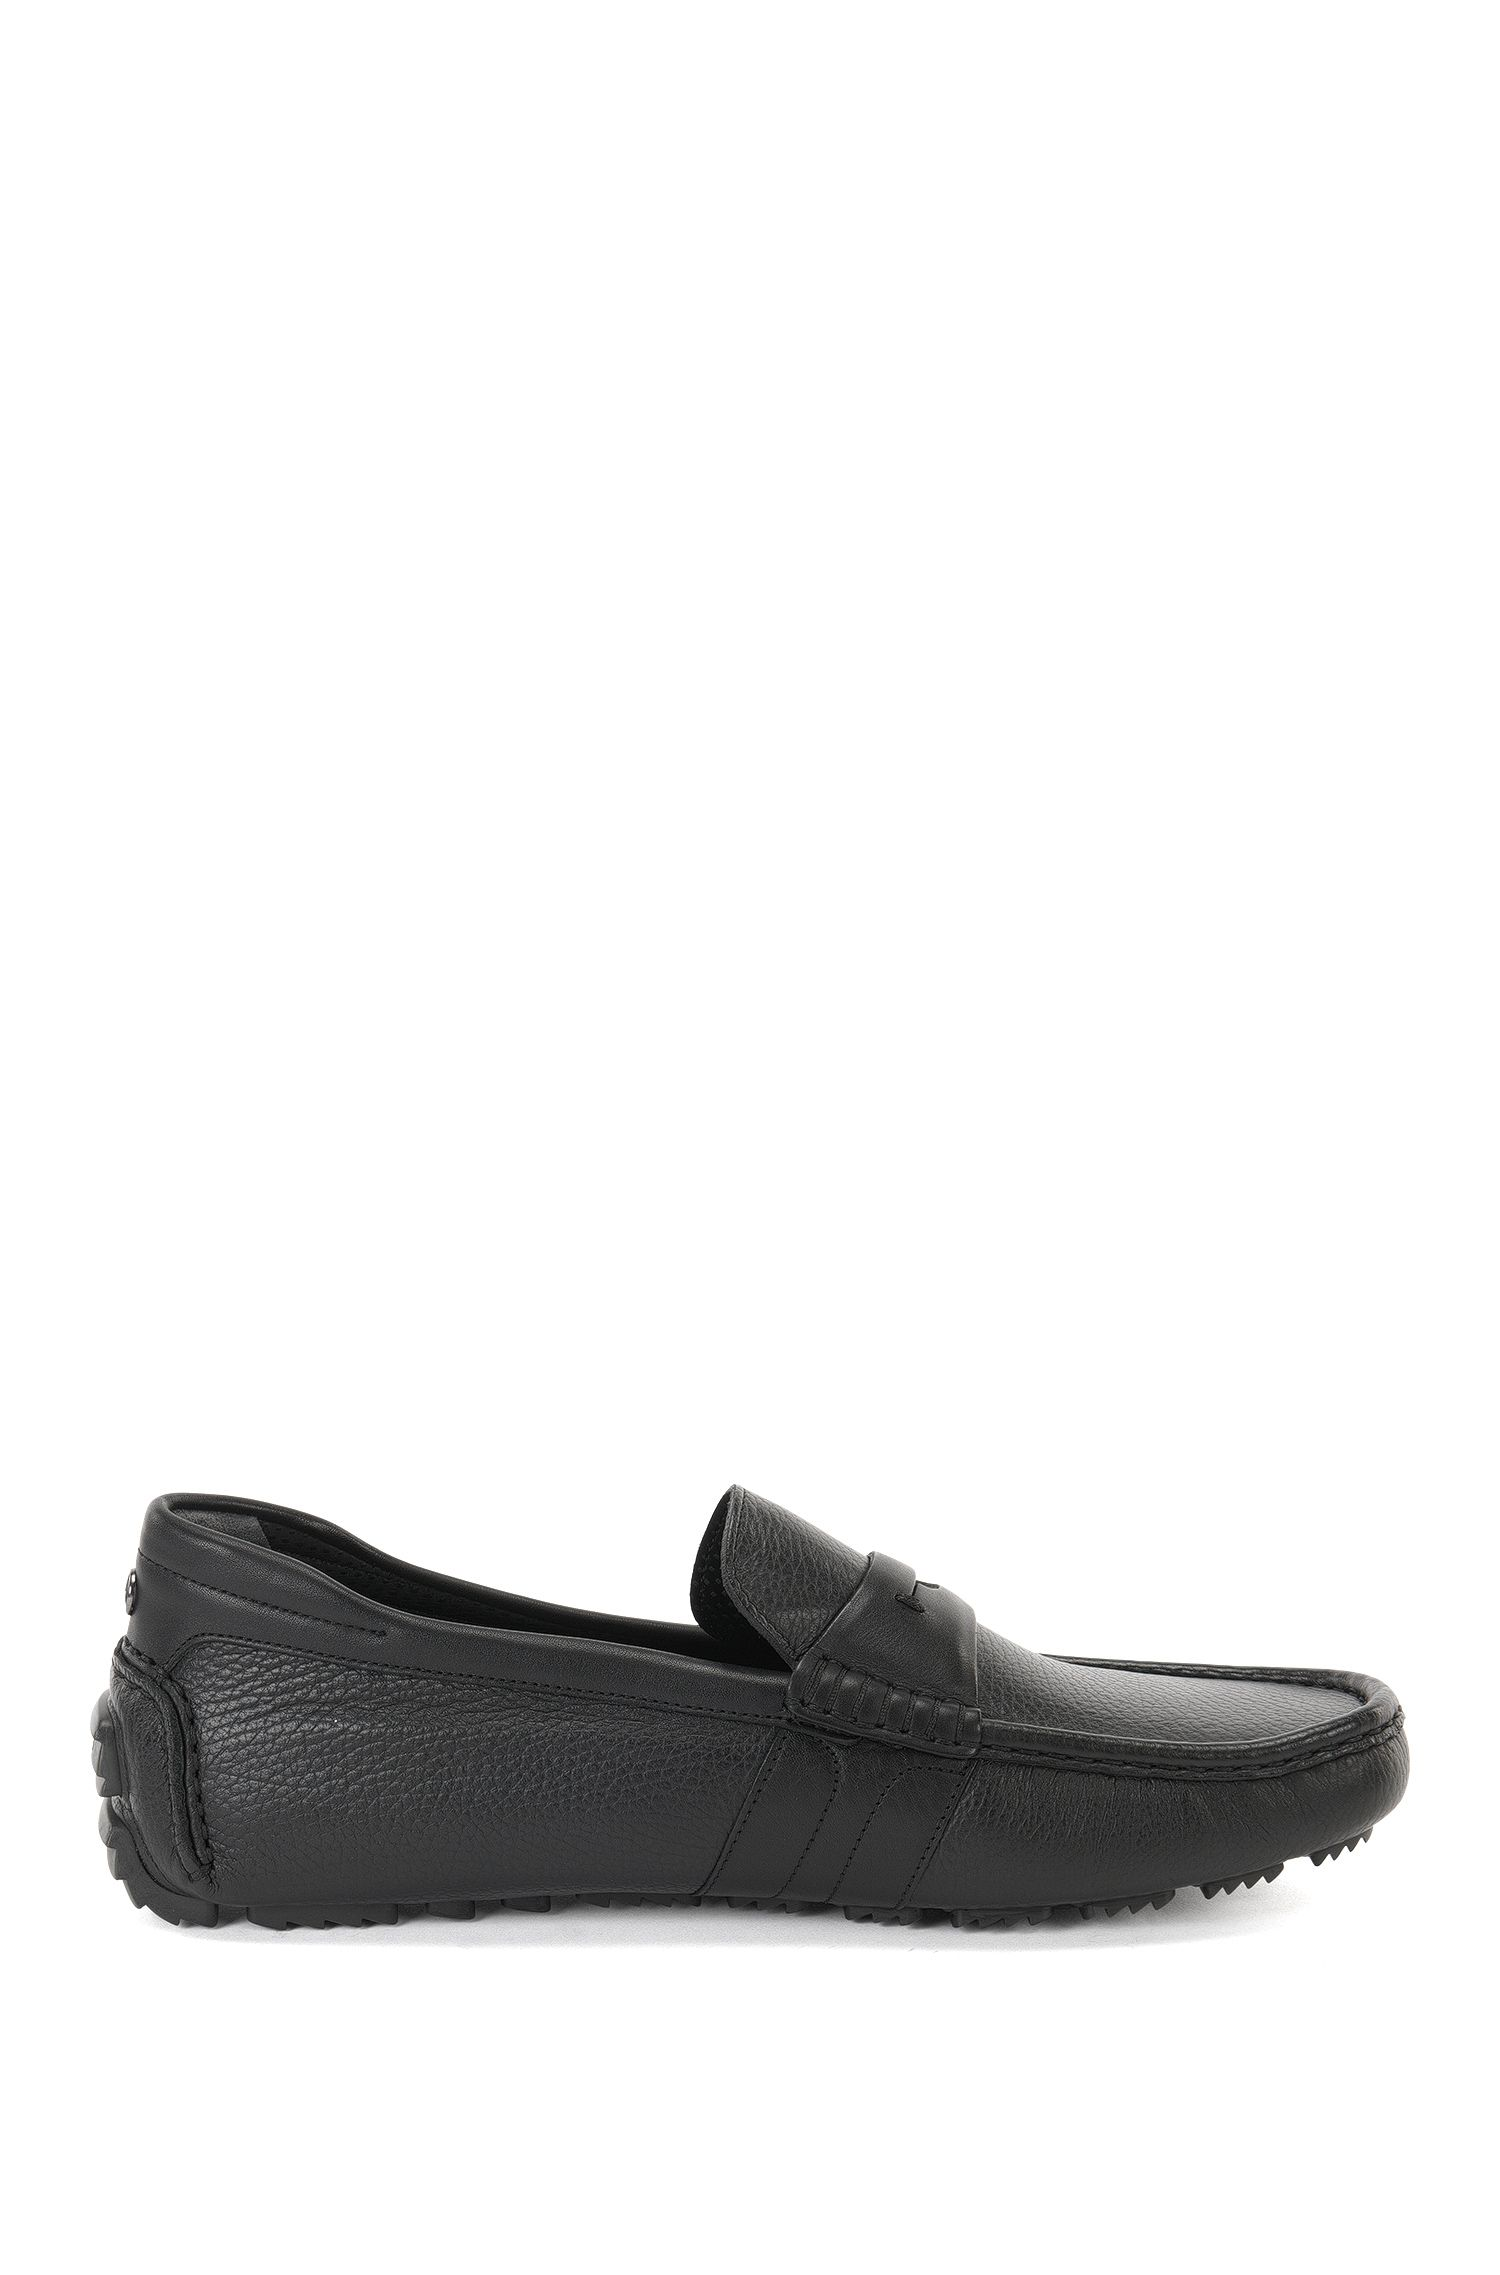 Leather moccasins in a mixture of textures: 'Driver_mocc_gr' from the Mercedes-Benz Collection